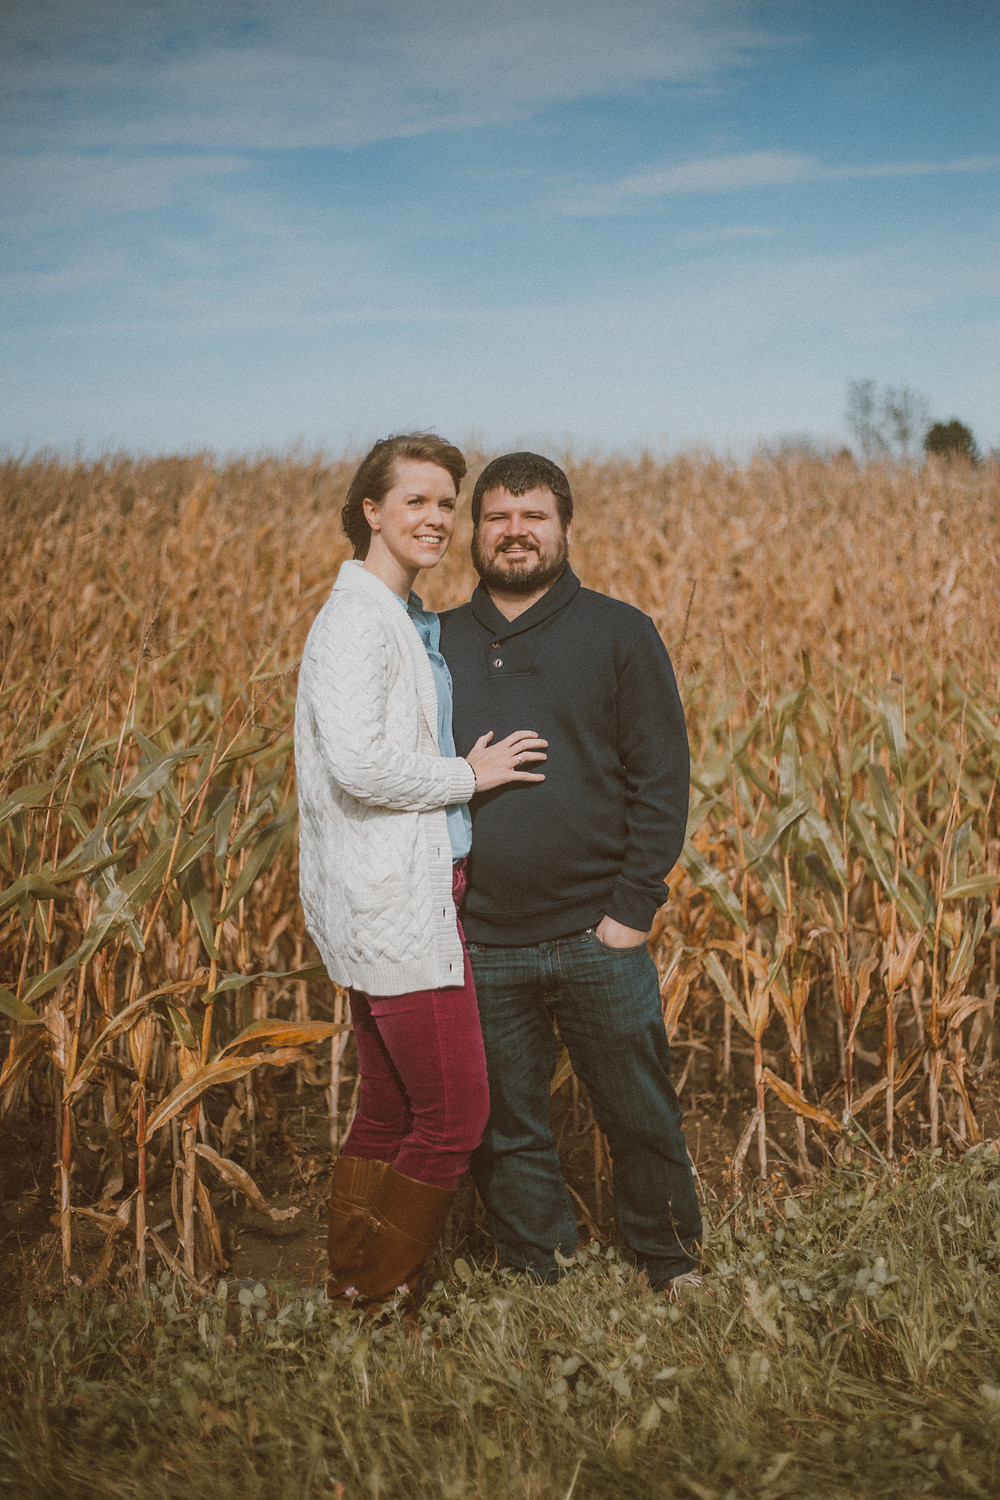 Fall mini sessions in a pumpkin patch. Lifestyle couples photography by Anna Gutermuth.